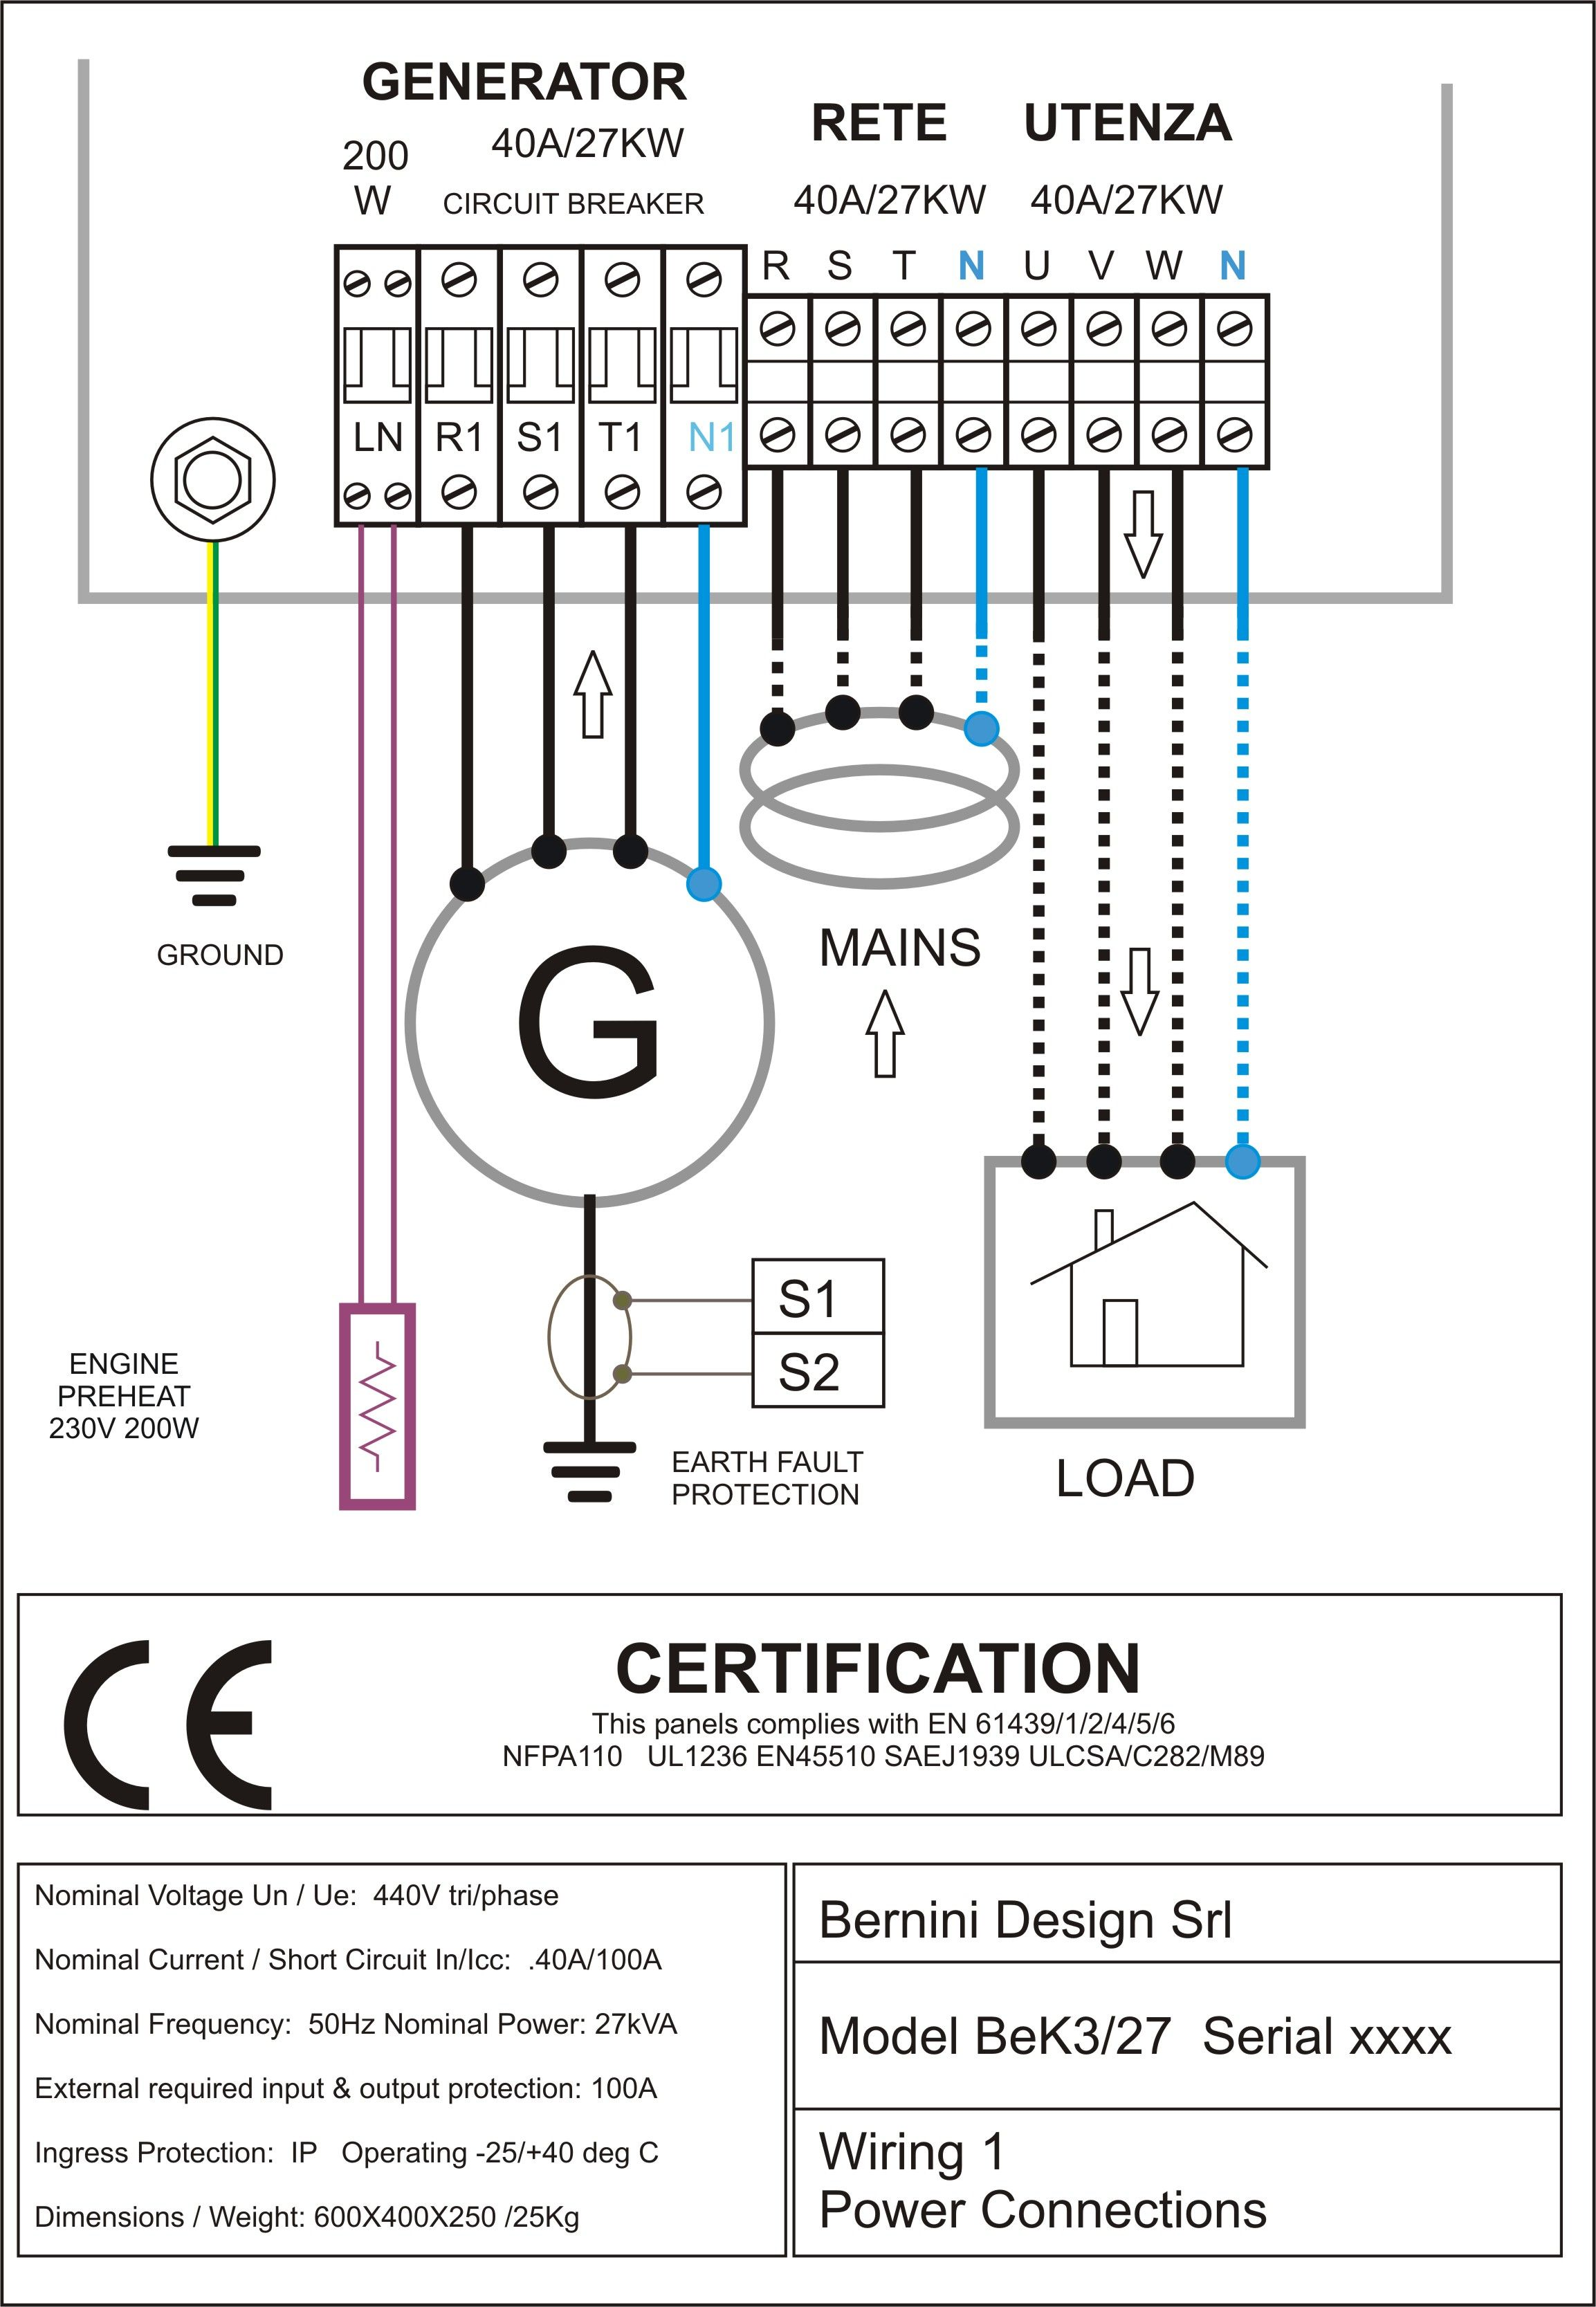 e789bca93f9142d48250ddc66668a81d diesel generator control panel wiring diagram gr pinterest controller wire diagram for 3246e2 lift at mifinder.co